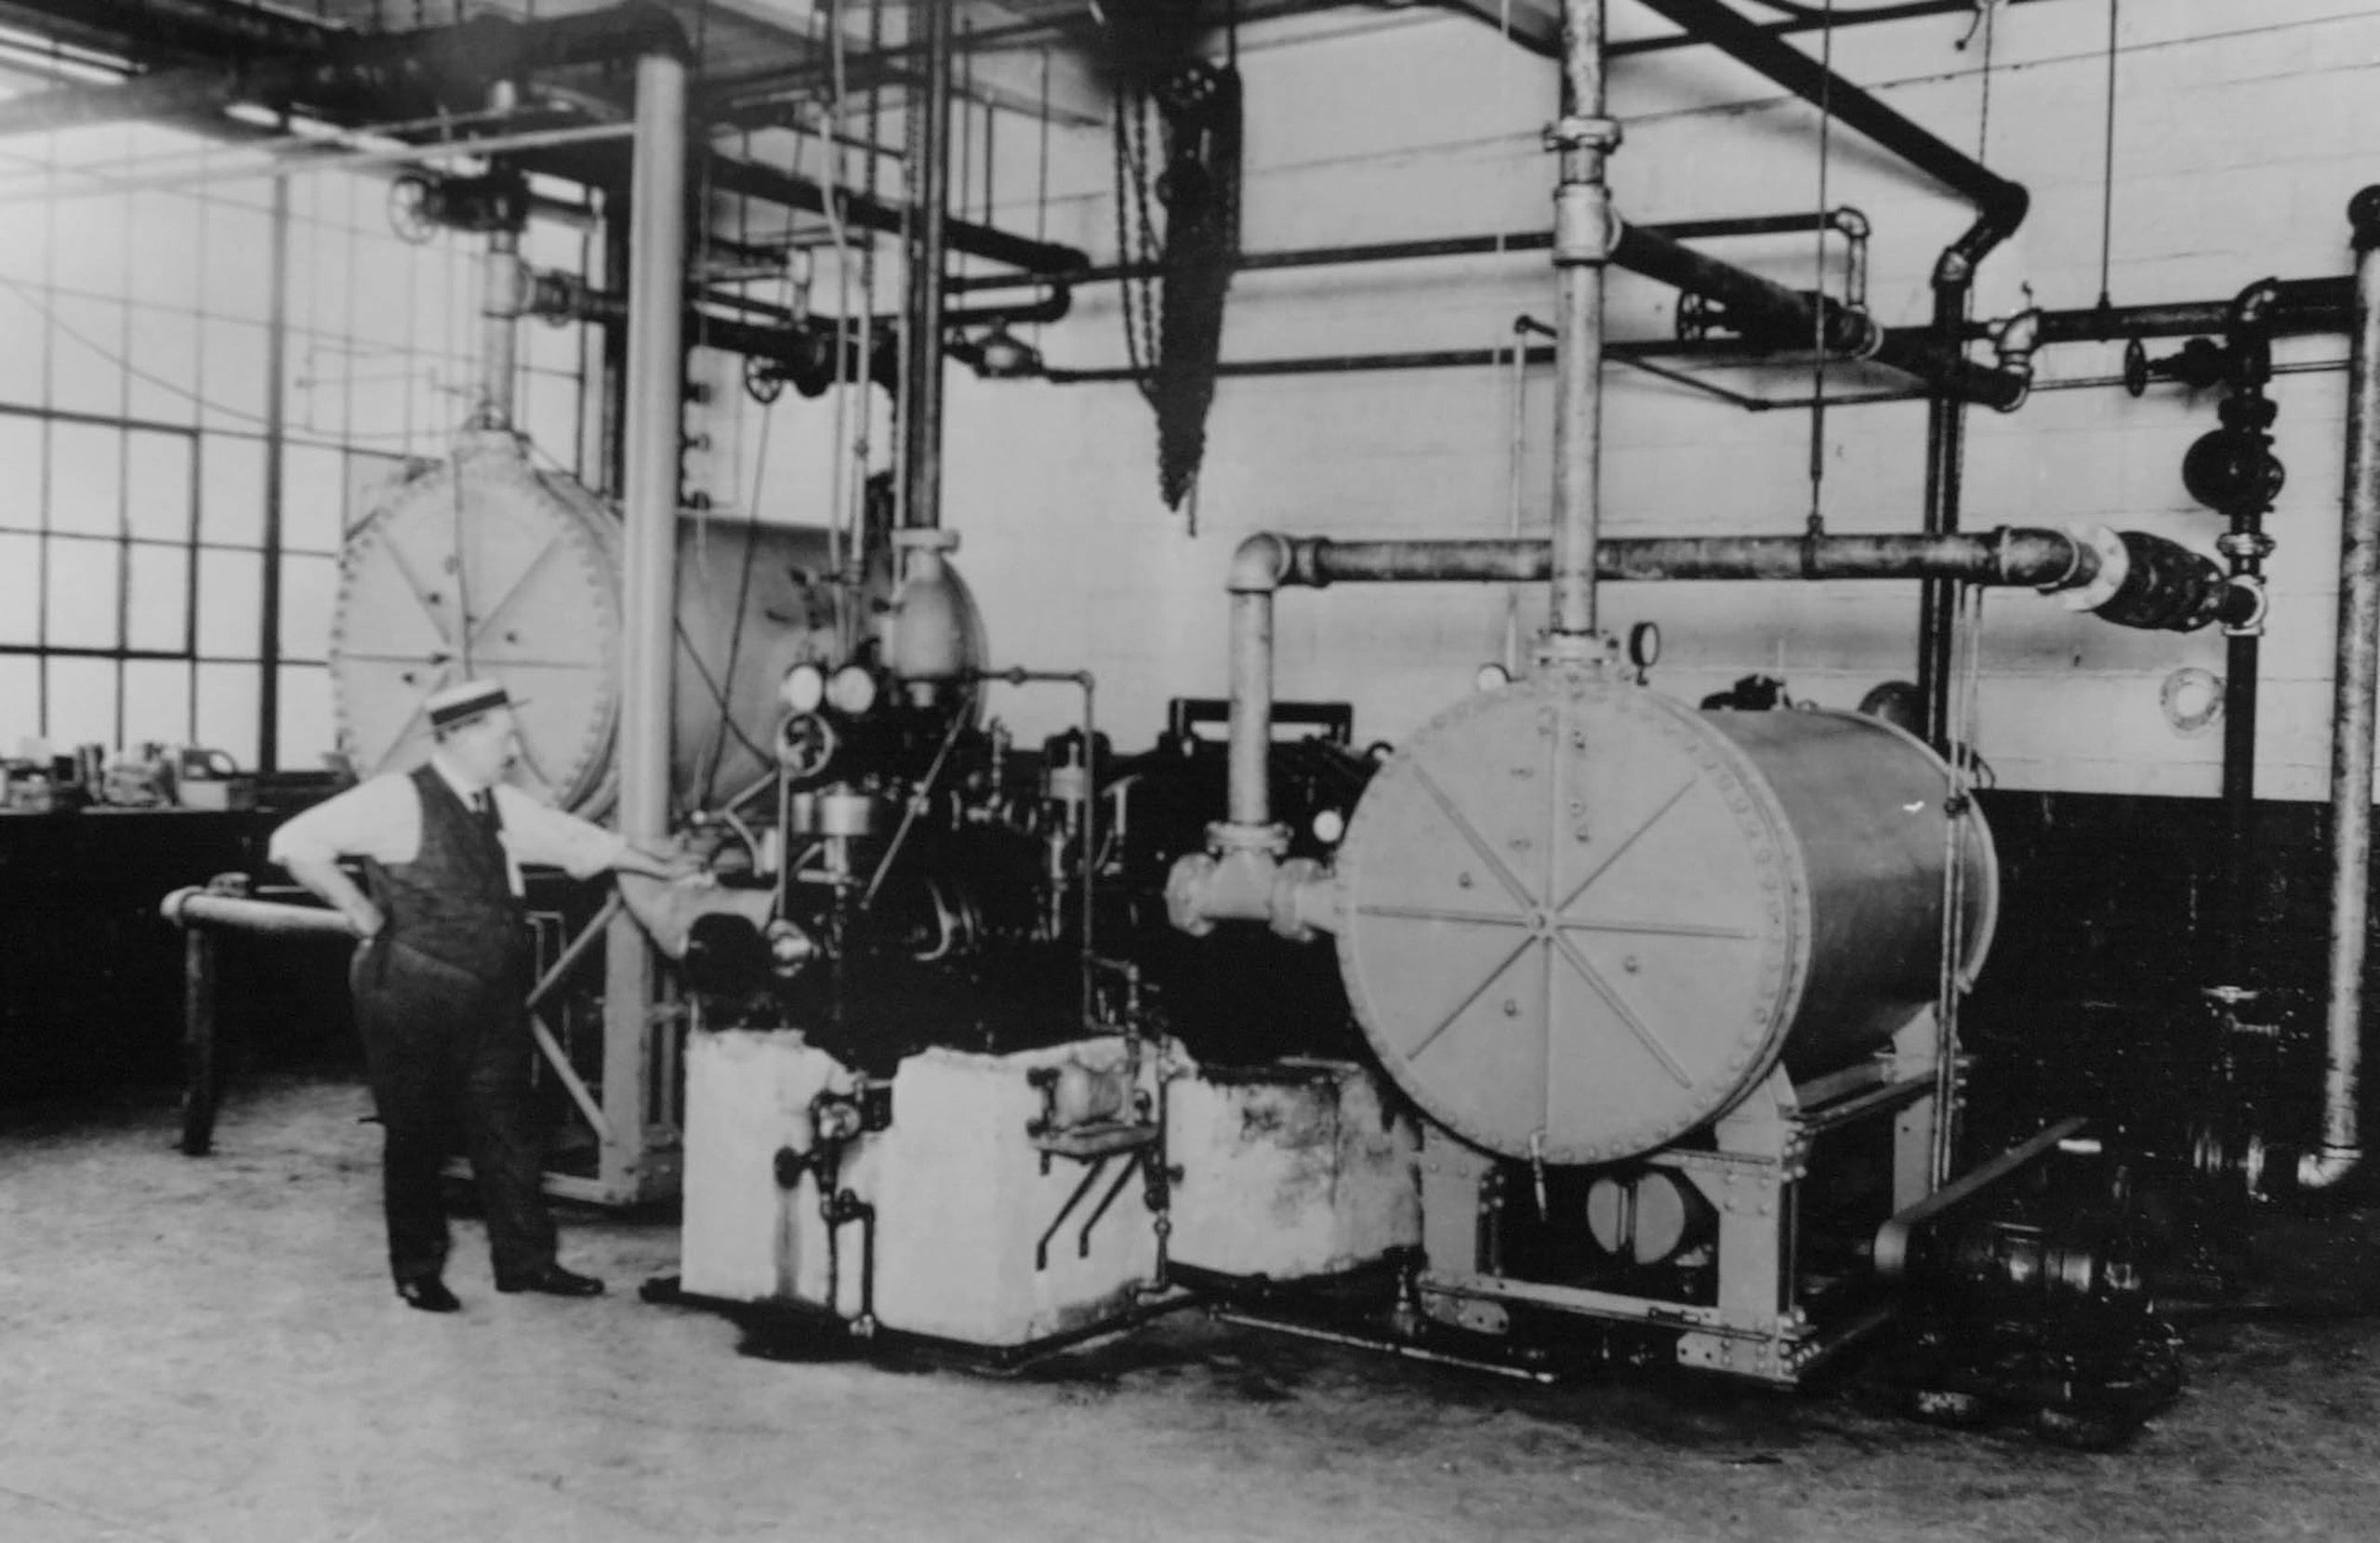 The first centrifugal refrigeration machine invented by Willis H. Carrier, the father of air conditioning, is pictured in Syracuse,  New York in 1922.